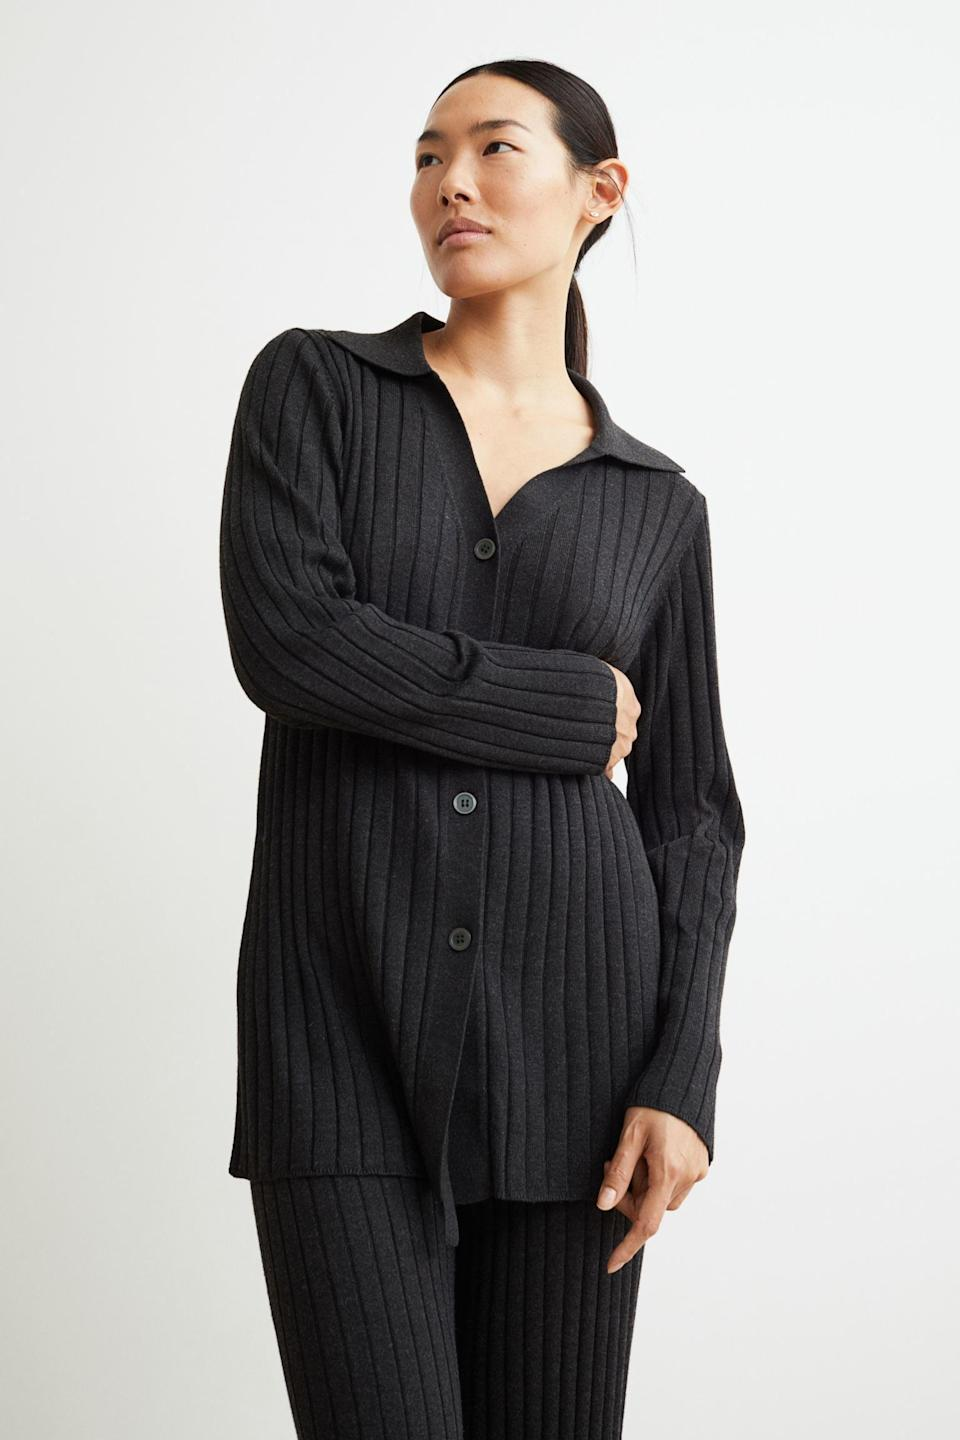 <p>This <span>Collared Ribbed Cardigan</span> ($30, originally $35) has an understated elegance accentuated by the refined silhouette. It's a guaranteed crowd pleaser and a piece you'll turn to season after season. Complete the look with the matching <span>Rib-knit Pants</span> ($29).</p>